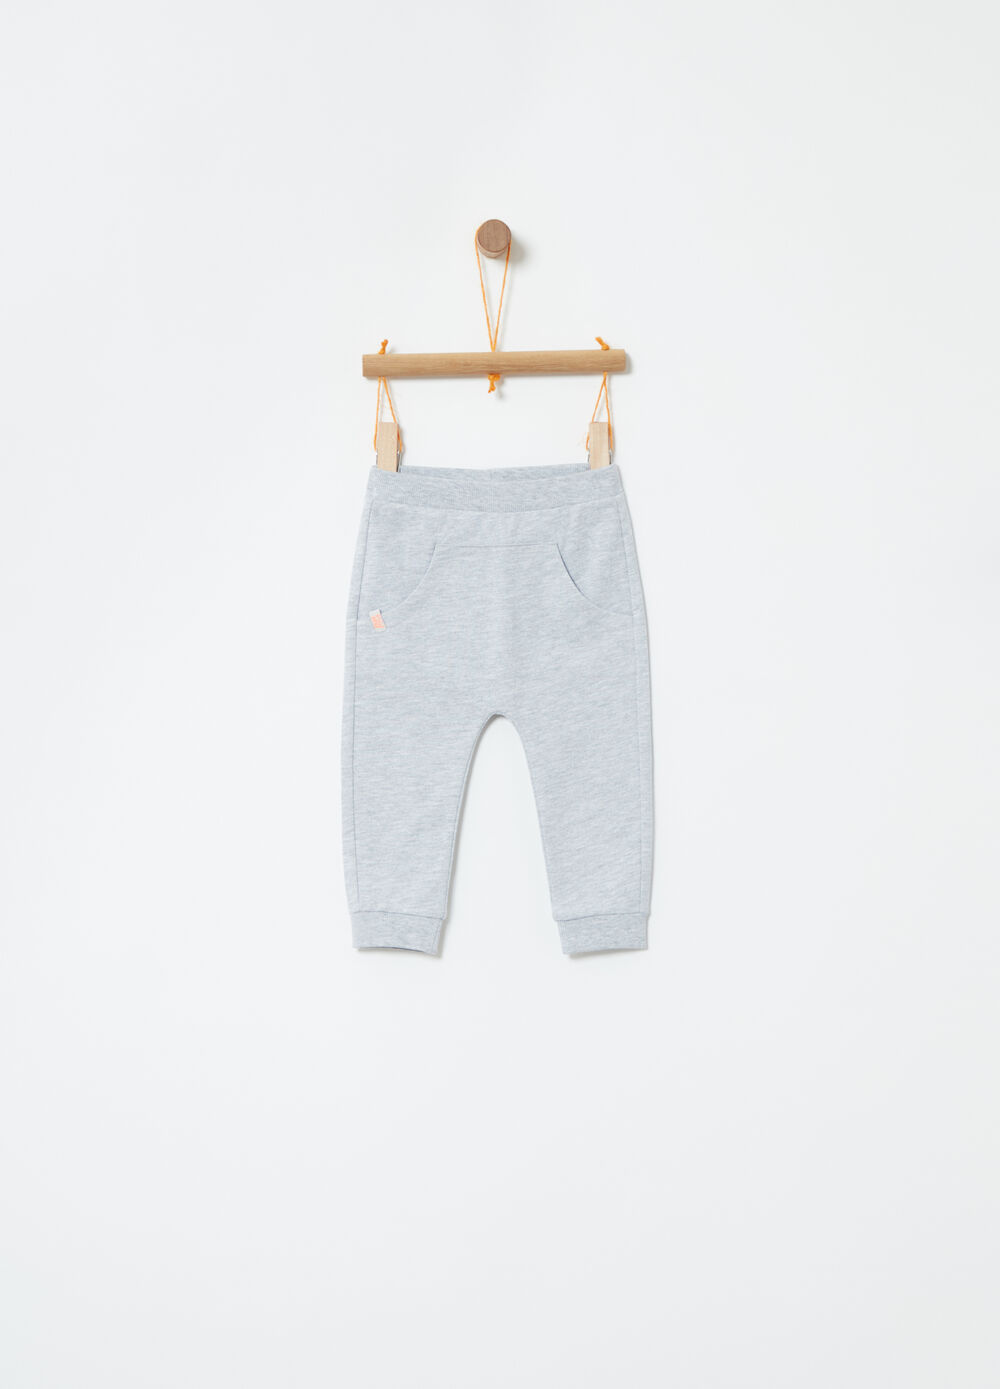 Trousers in French Terry with pouch pocket